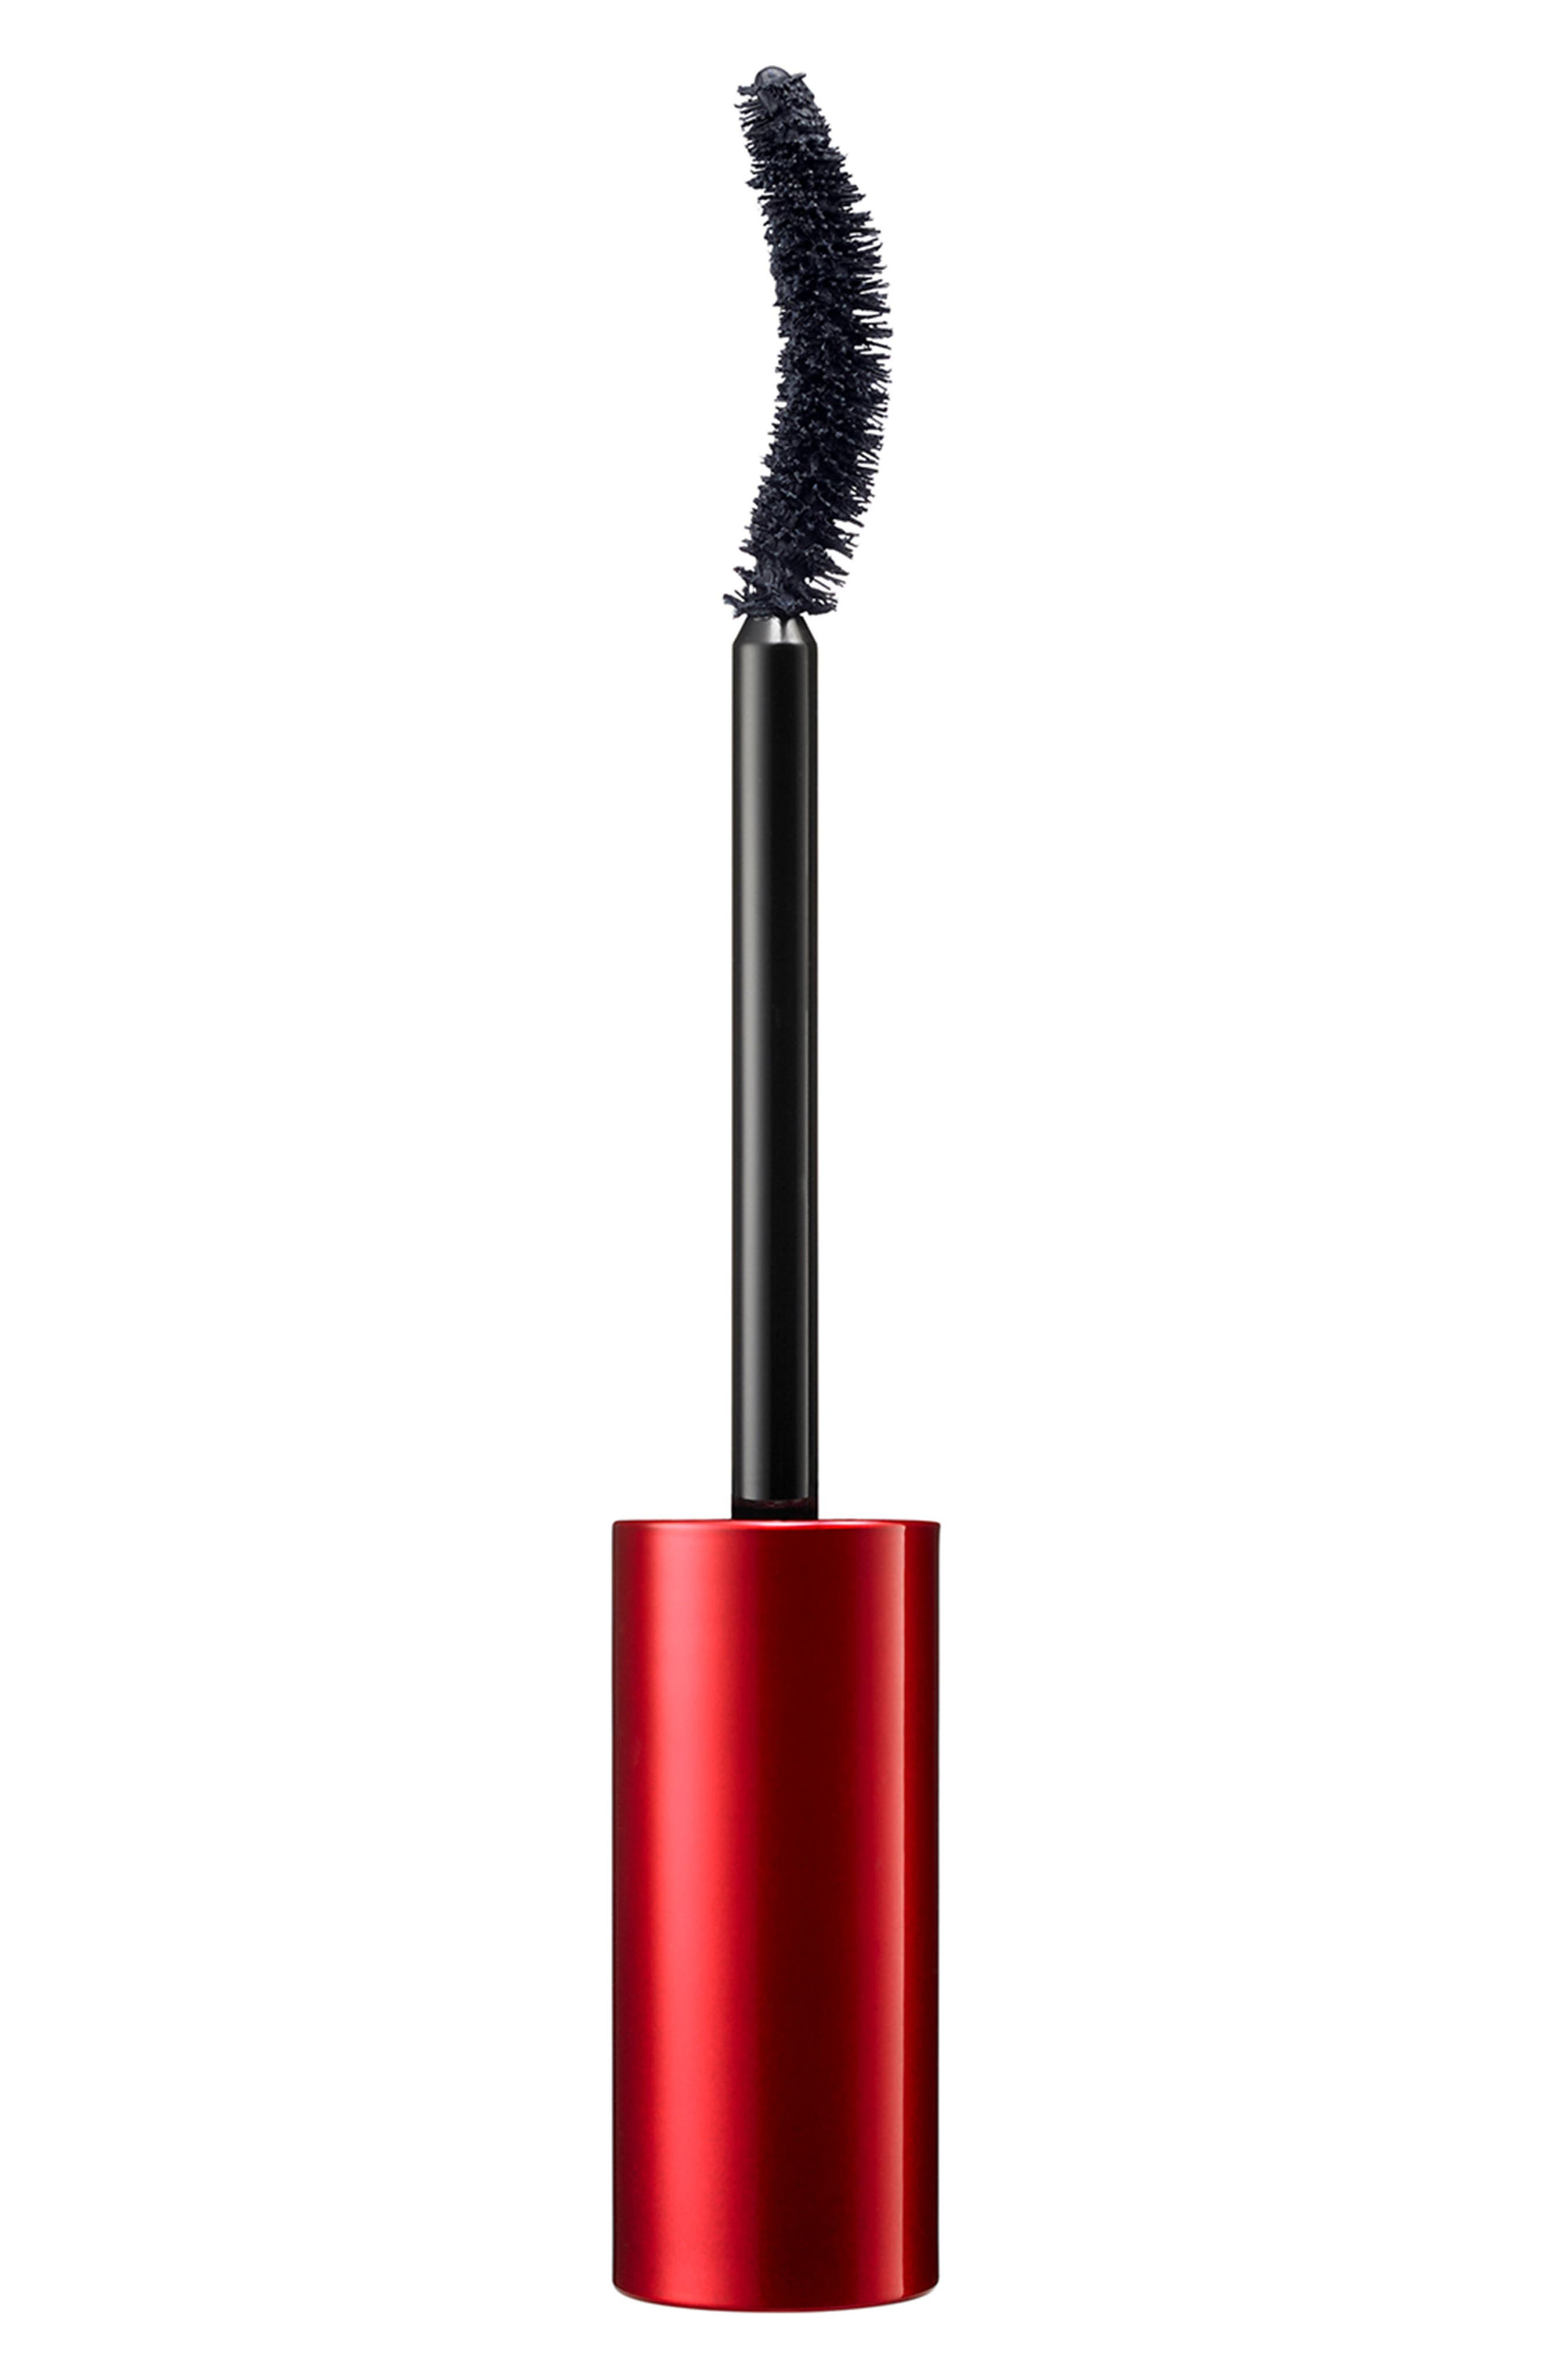 Koh Gen Do Long Lush Treatment Mascara